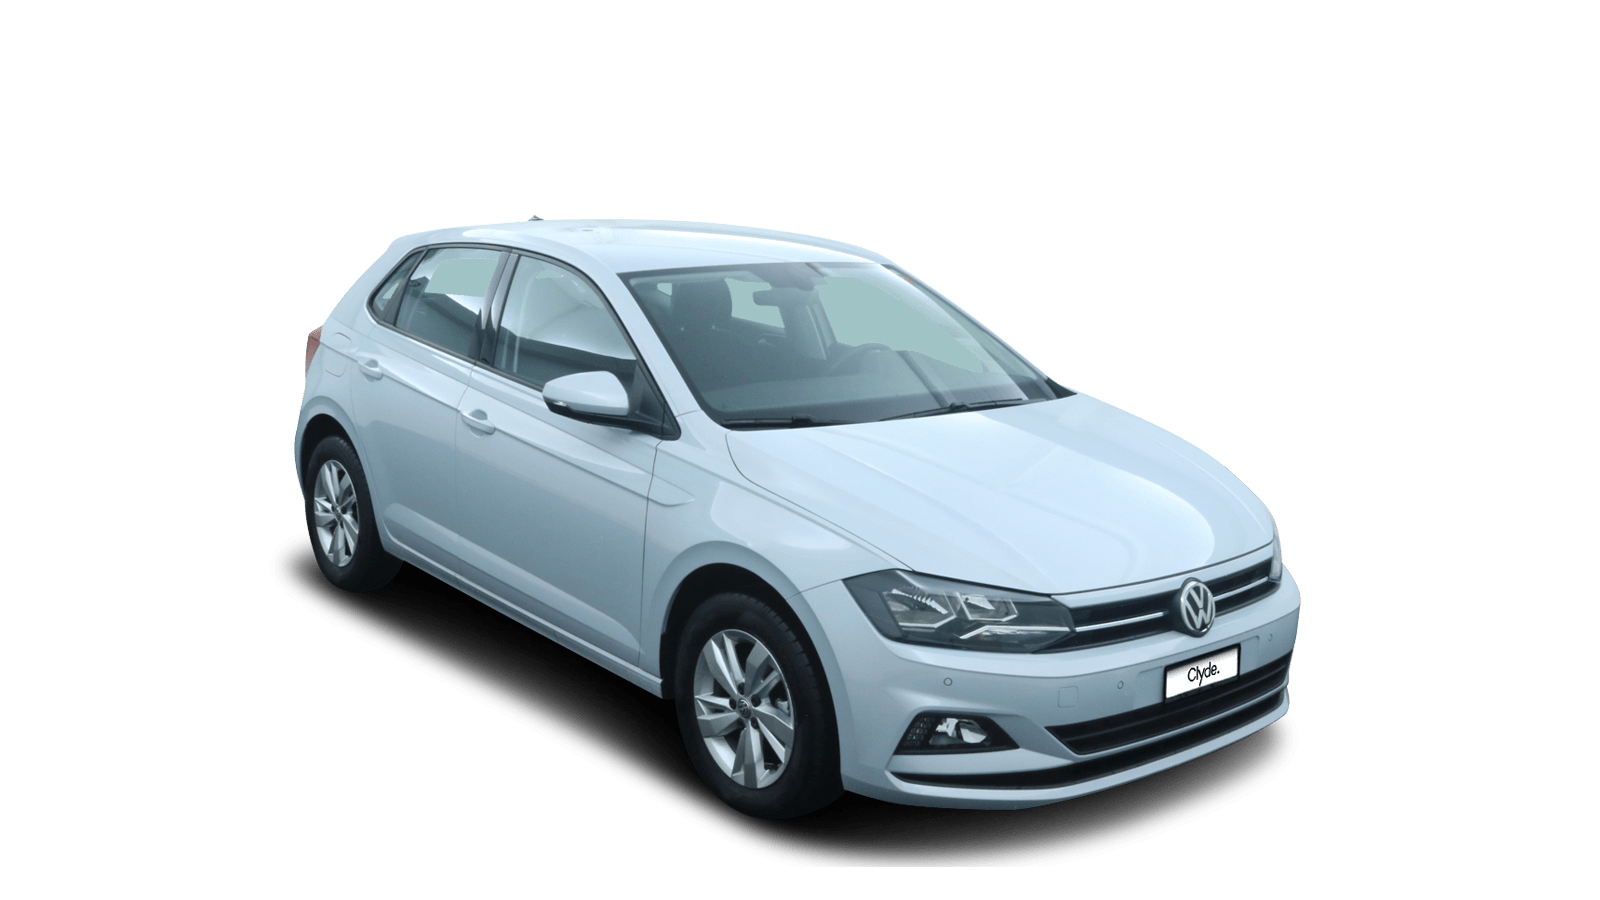 VW Polo Silver front - Clyde car subscription